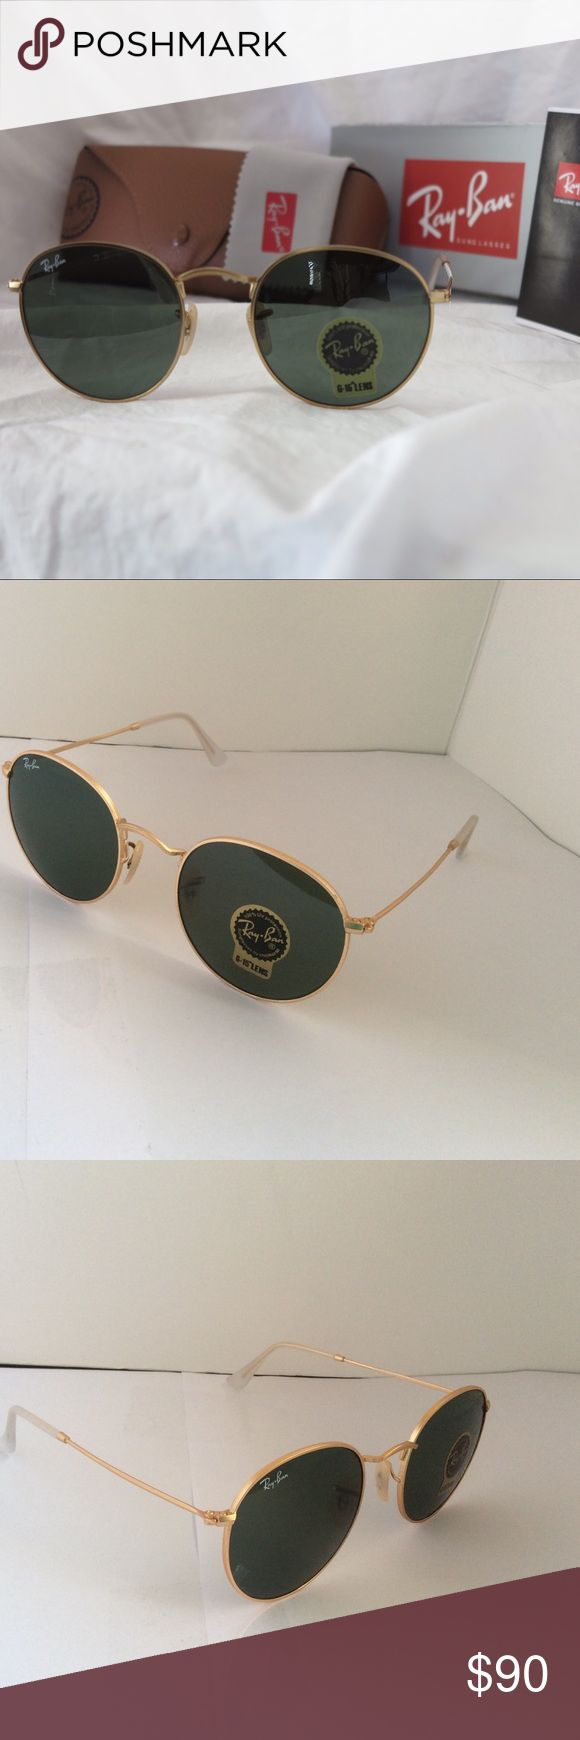 Ray-Ban John Lennon style round 🕶 in gold/g-15 New Ray-Ban Unisex Sunglasses John Lennon Style. RB3447 001 50-21 Gold Metal Frame. Green Classic G-15 Lenses. Made in Italy. Glasses come with outer box, hard case, cleaning cloth and informational booklets.   The Ray-Ban Round Metal sunglasses are totally retro. This look has been worn by legendary musicians and inspired by the 1960s counter-culture when this style first originated.The Ray-Ban unisex metal, iconic sunglasses are known for…